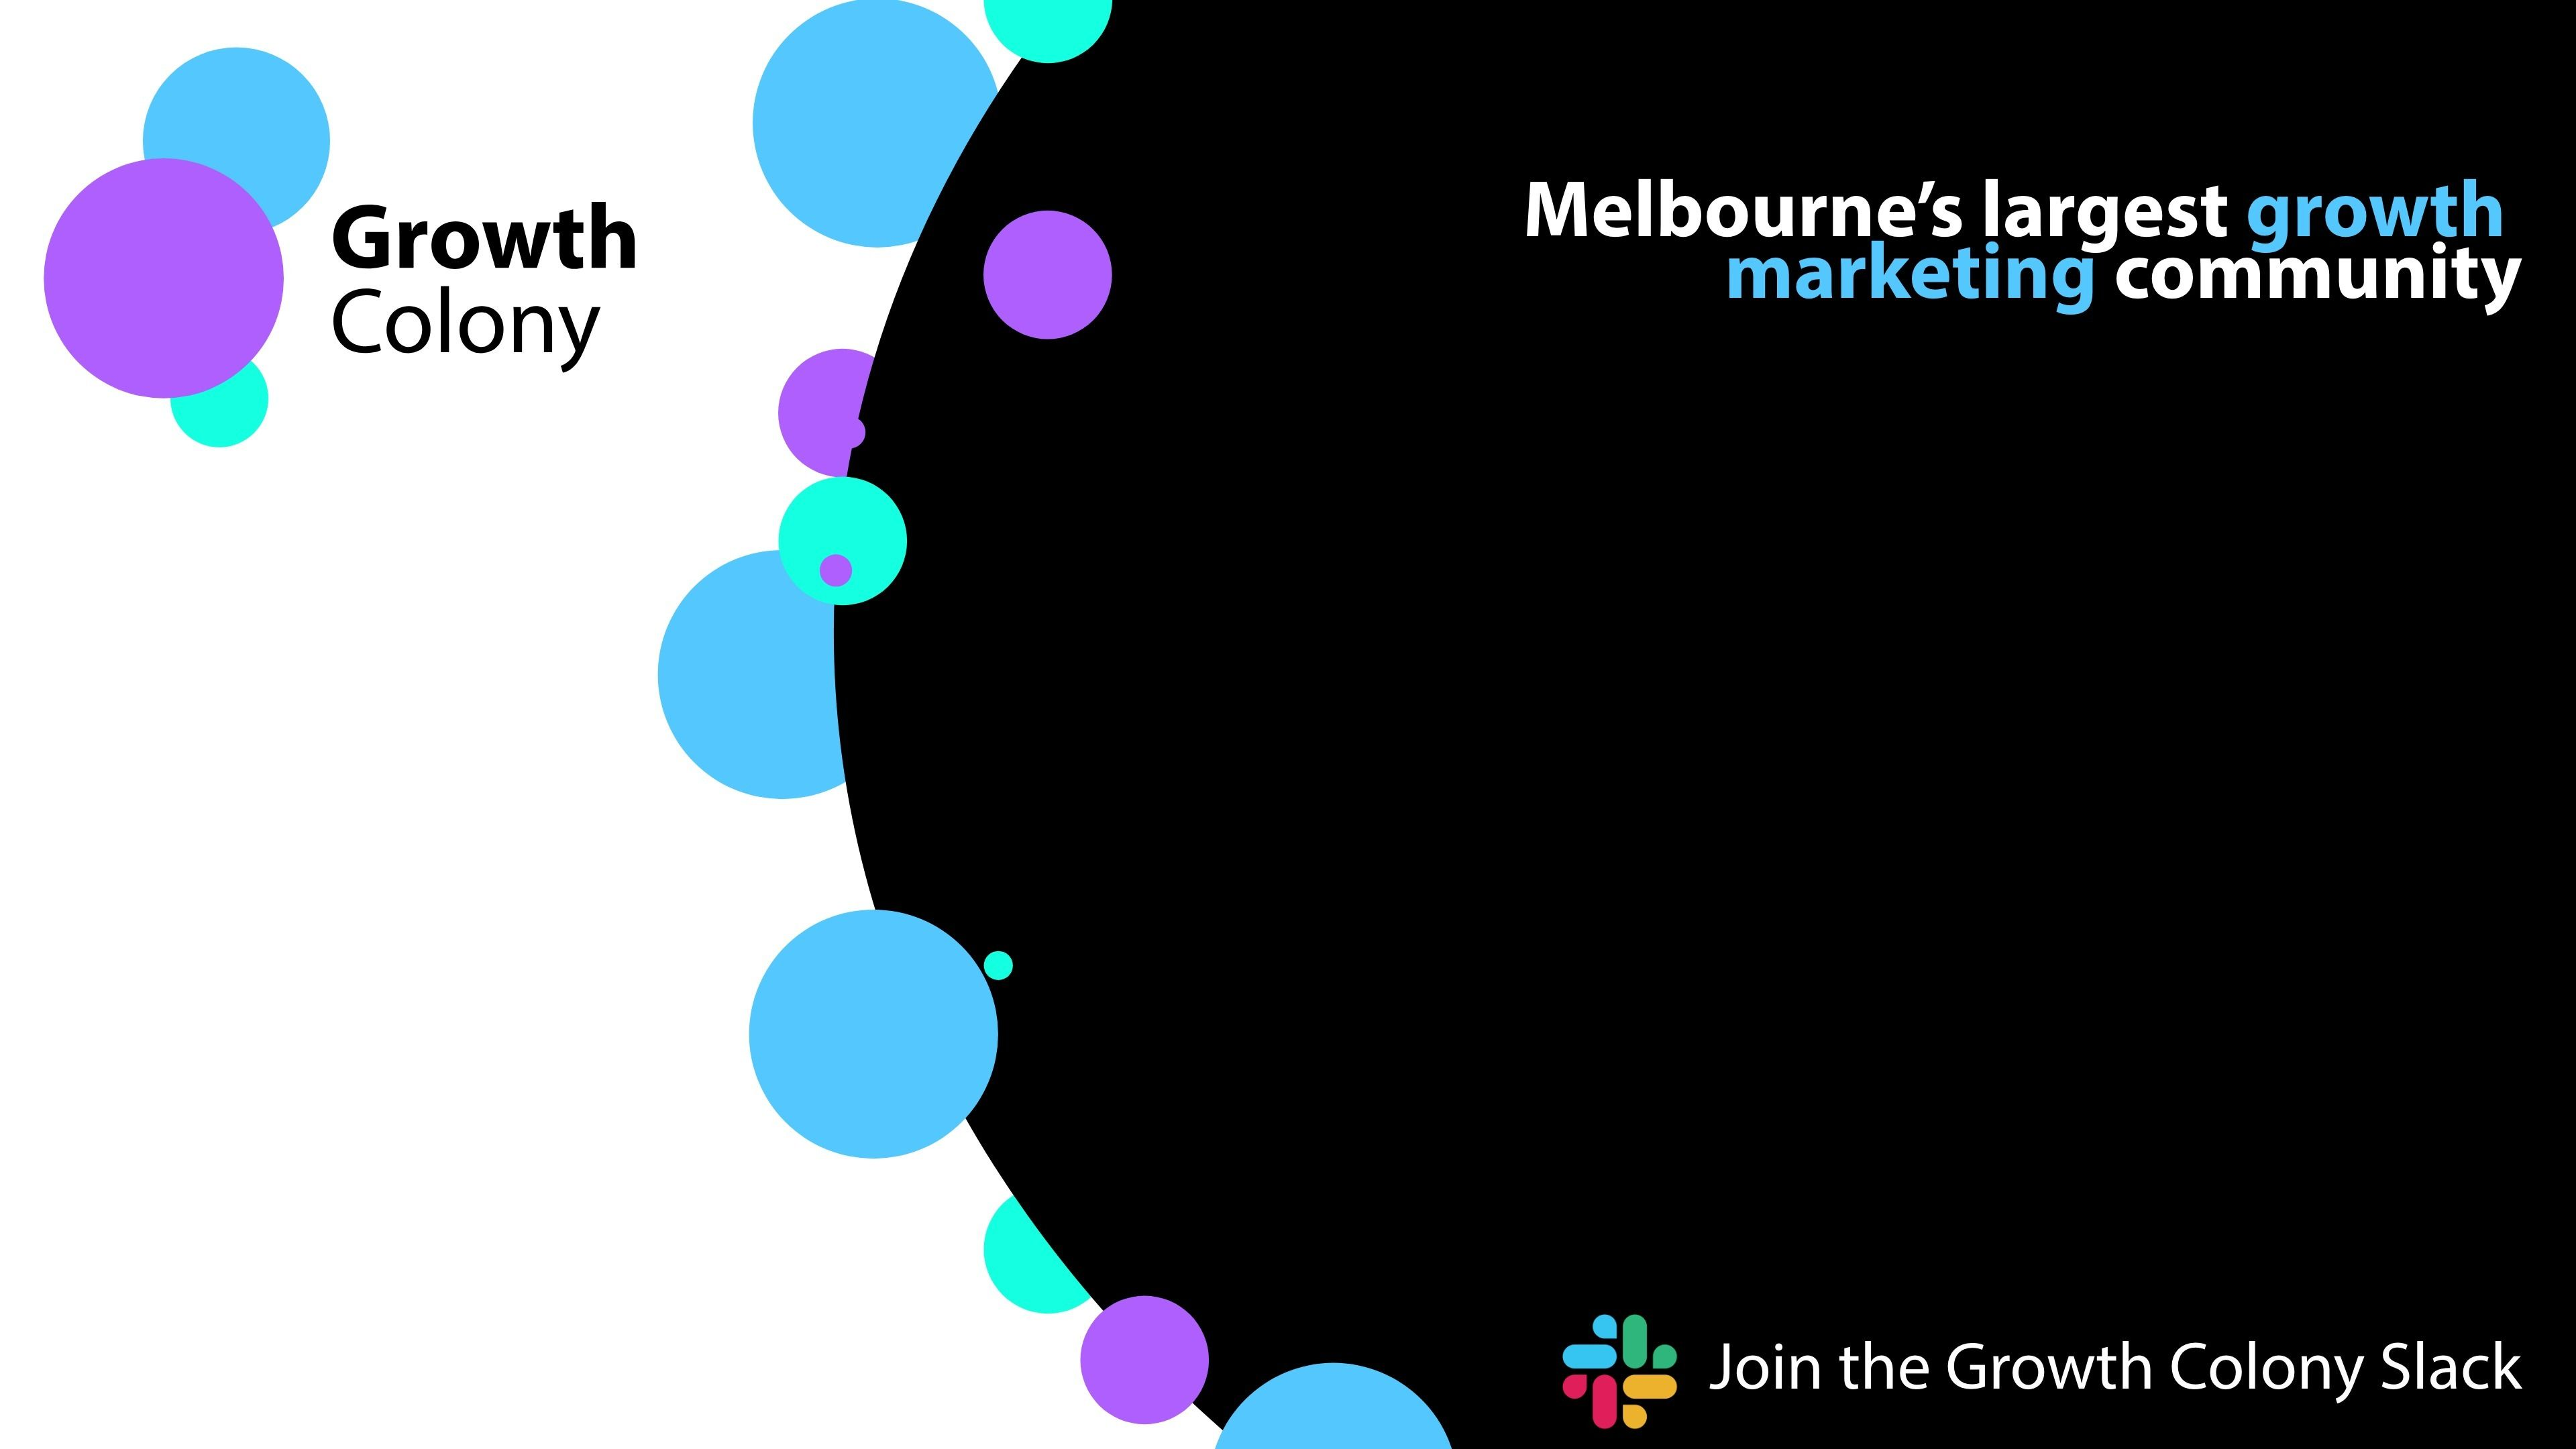 Growth Colony: Melbourne's Growth Marketing Community